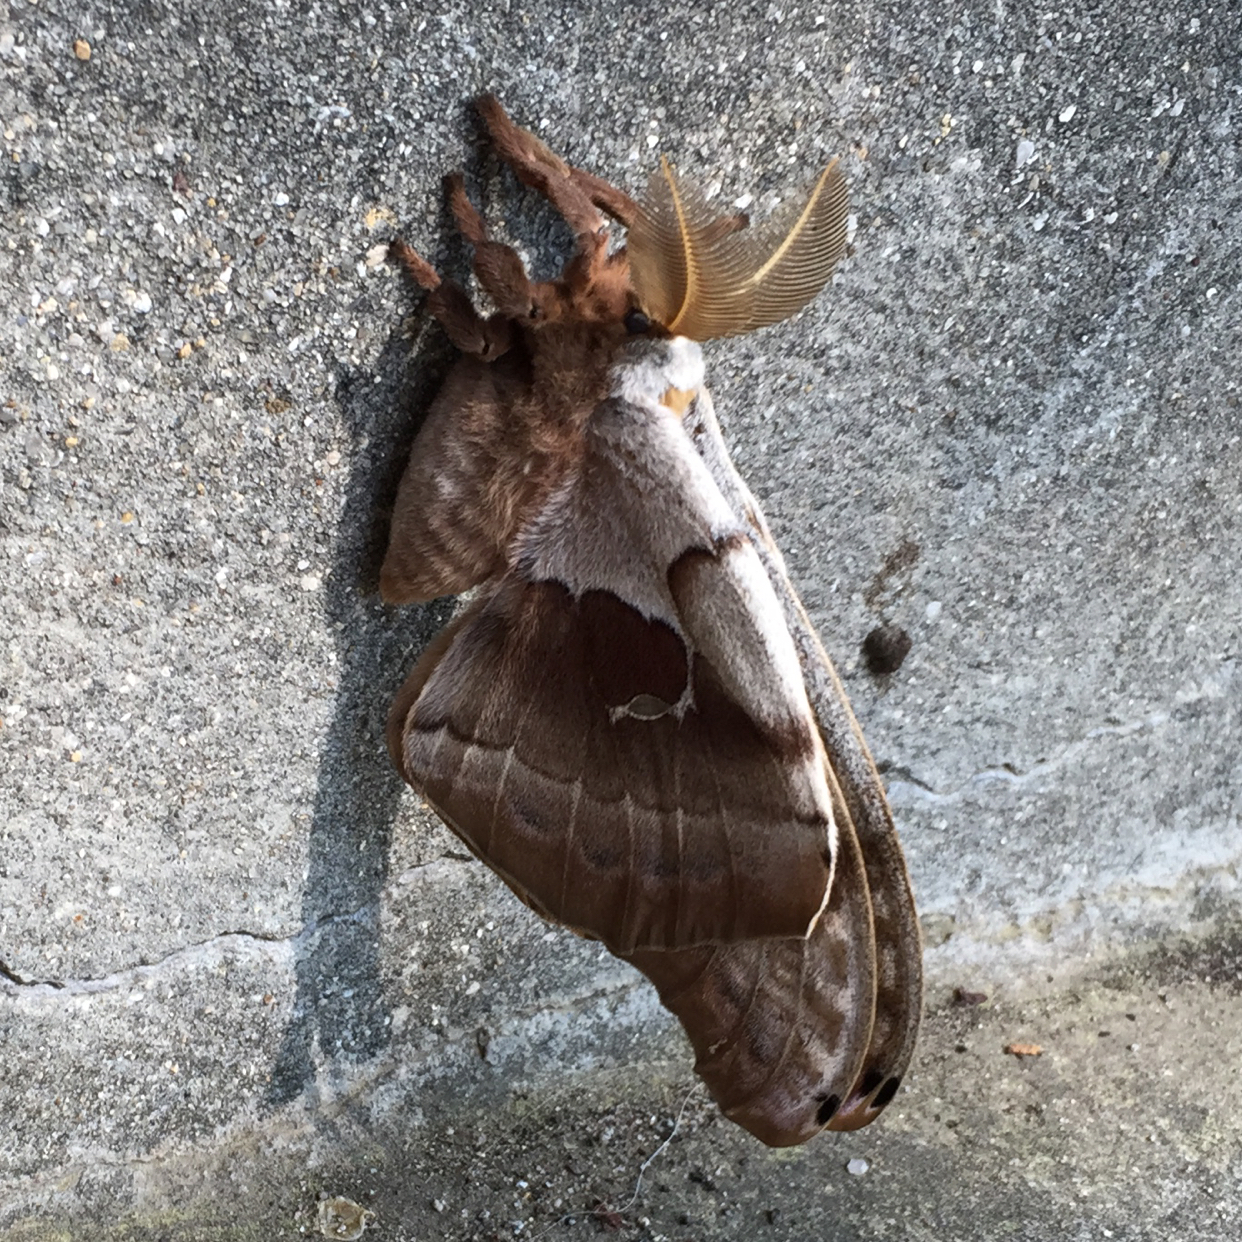 A Large Moth, possibly Polyphemus